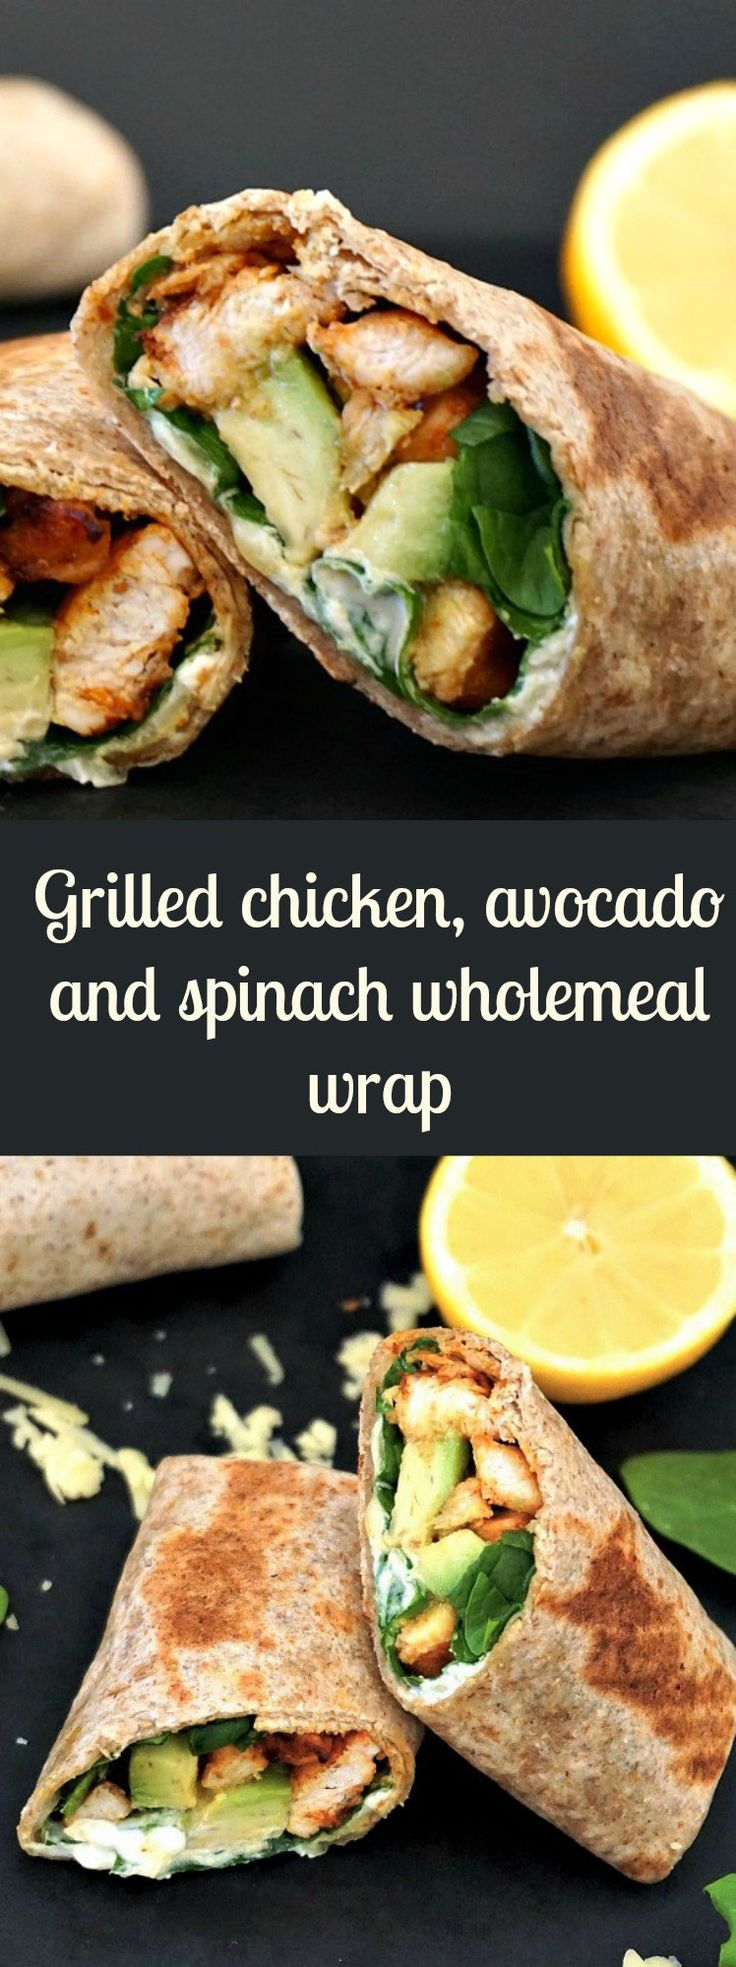 587 best advocare 24 day challenge meal ideas images on pinterest grilled chicken avocado and spinach wholewheat wrap a healthy recipe when you are on the go or time is short for cooking complicated dishes forumfinder Choice Image